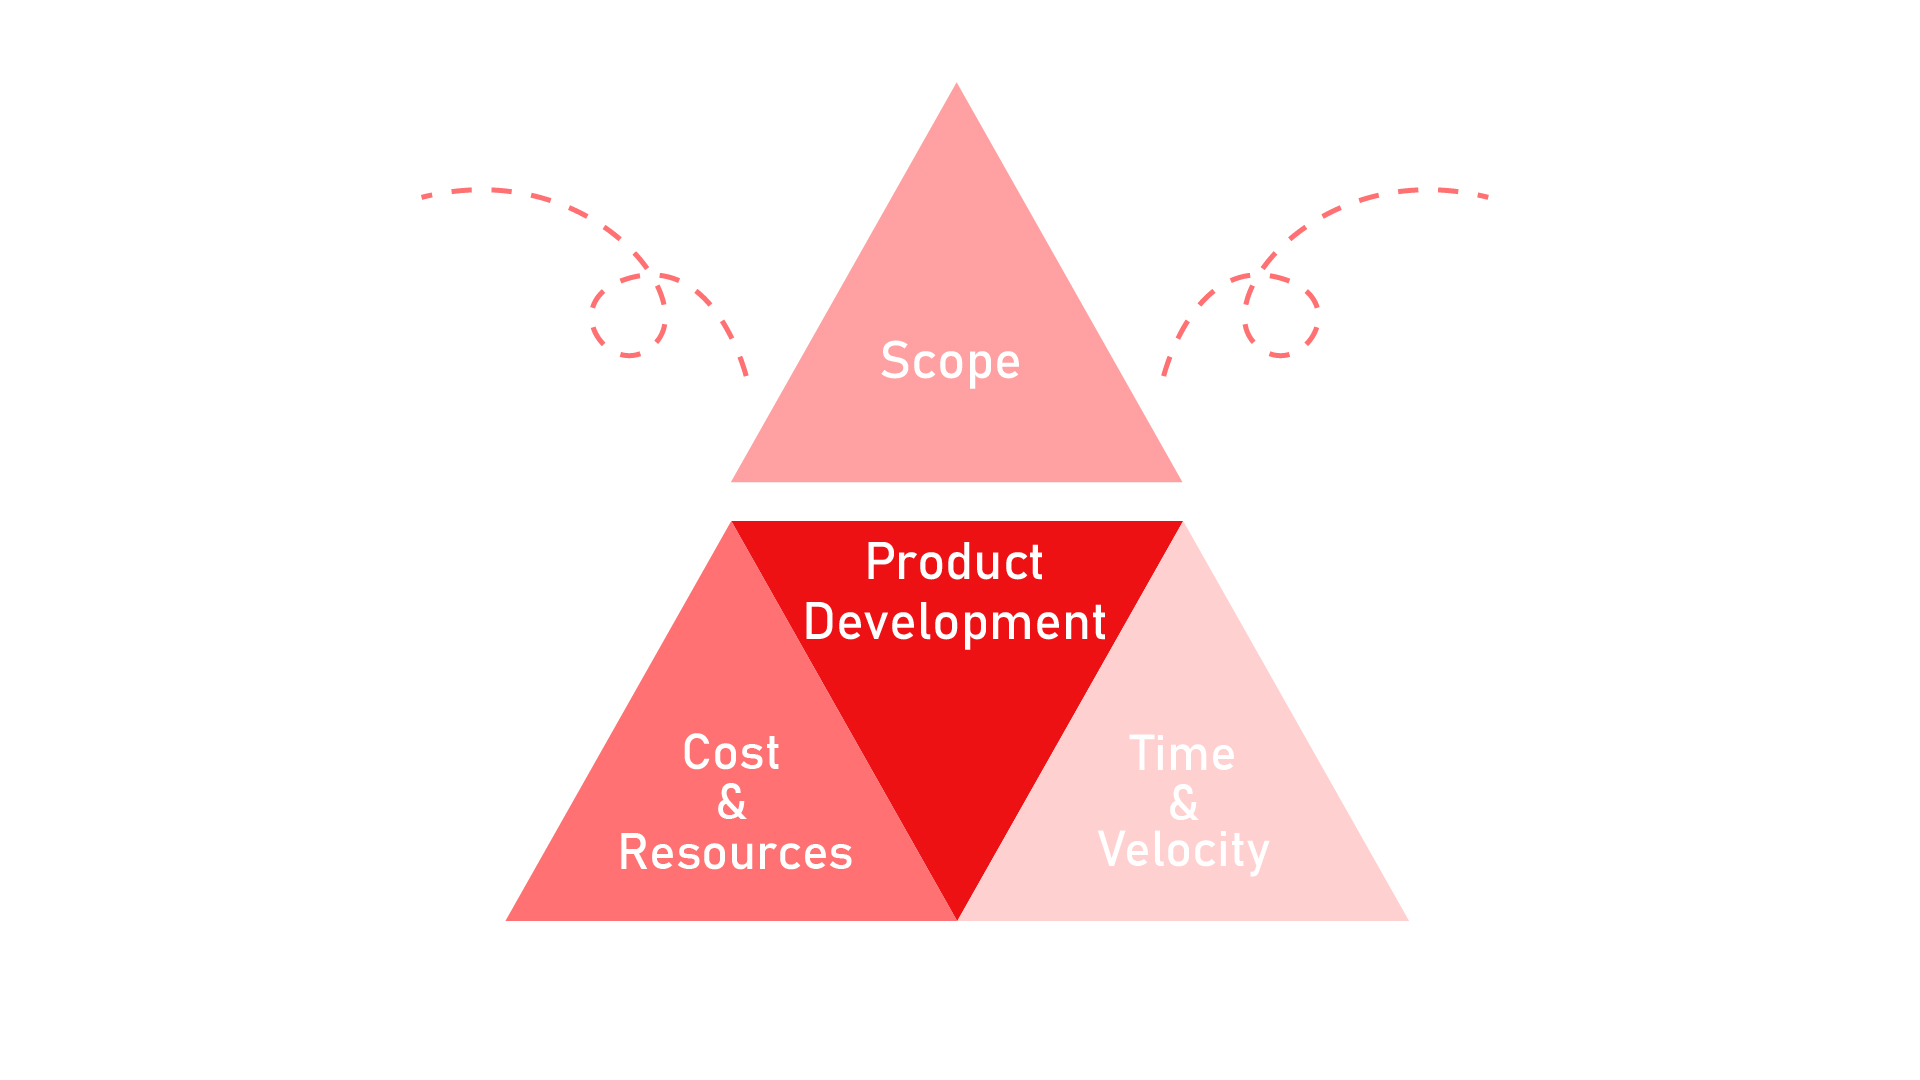 the graphic showing the project management triangle - scope stands out